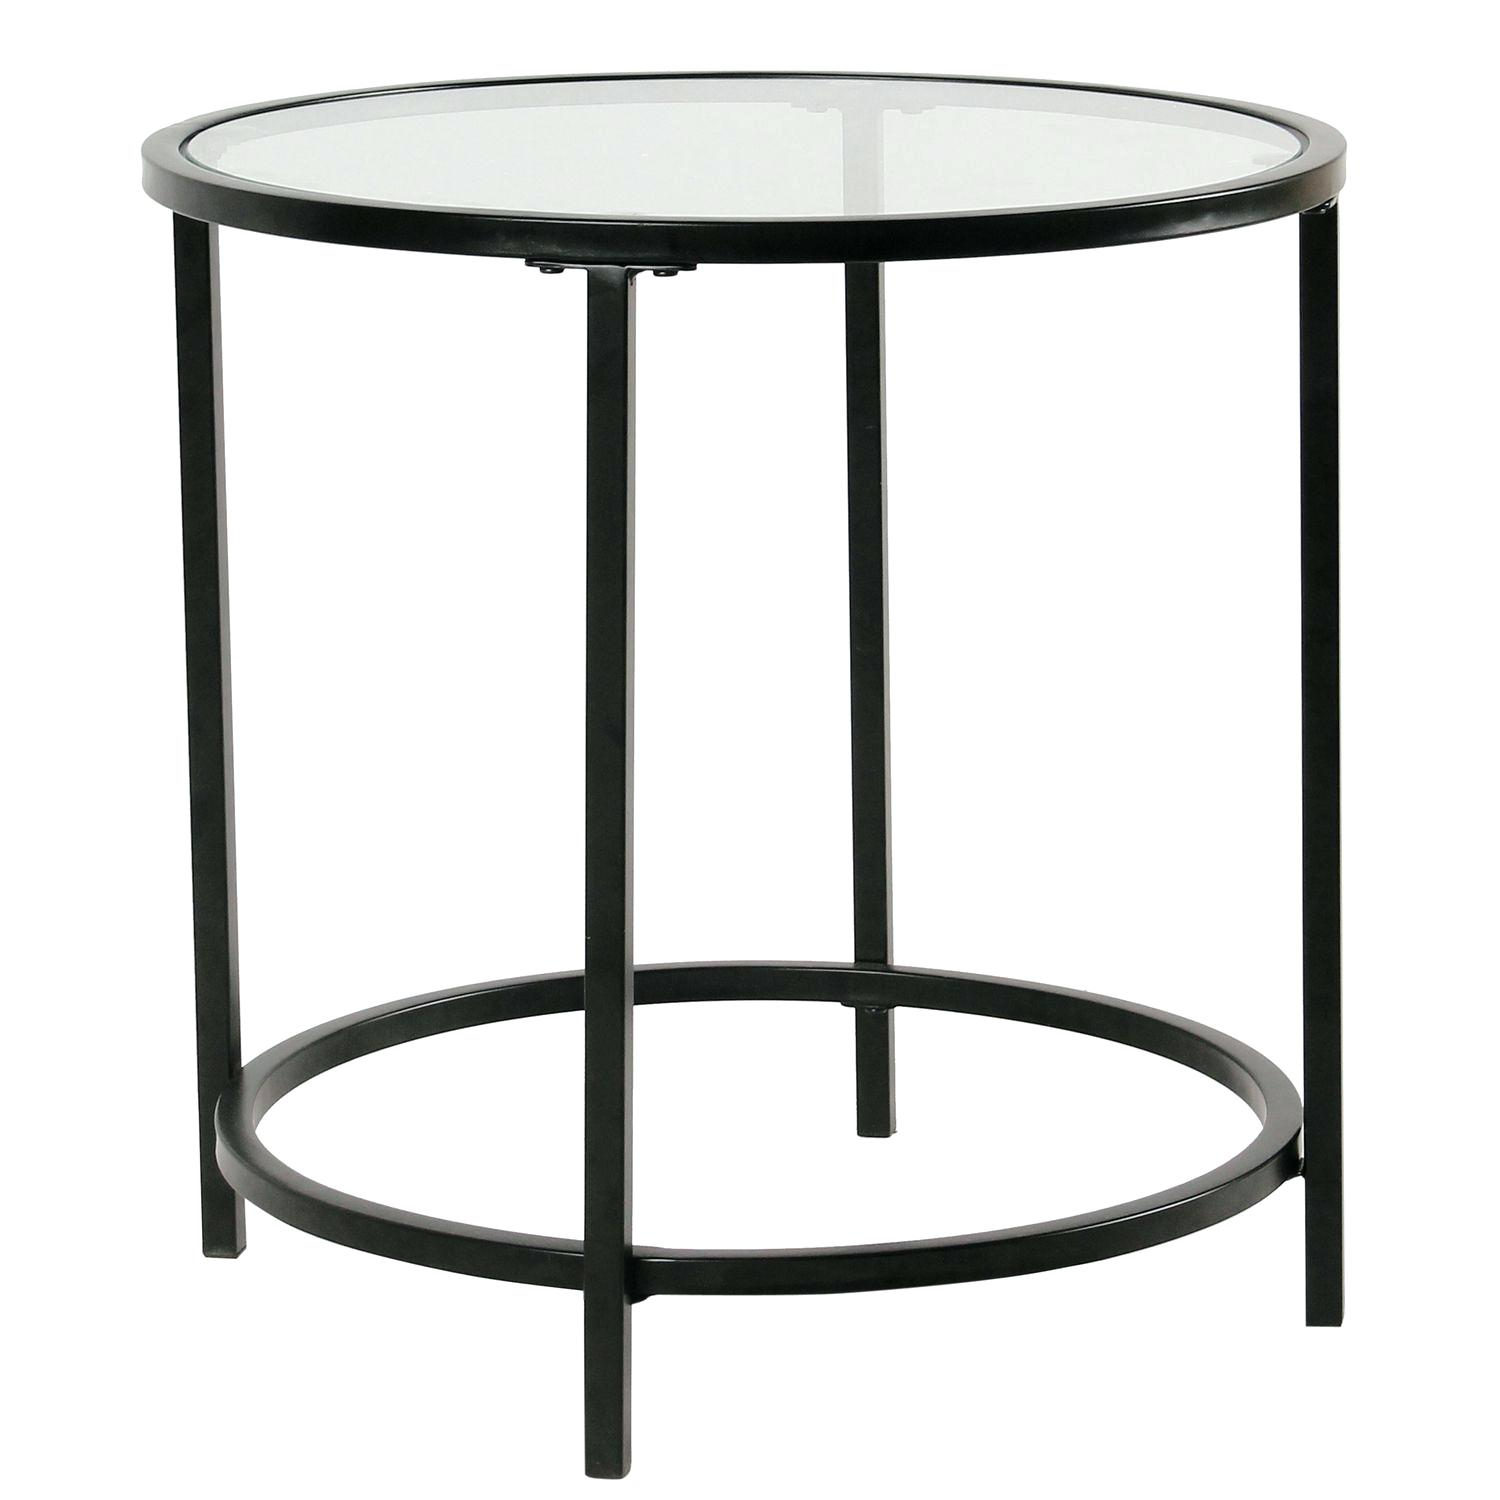 black round accent table transitional side with storage winsome daniel drawer finish pottery barn torchiere floor lamp very slim outdoor cover wicker bookshelf glass doors